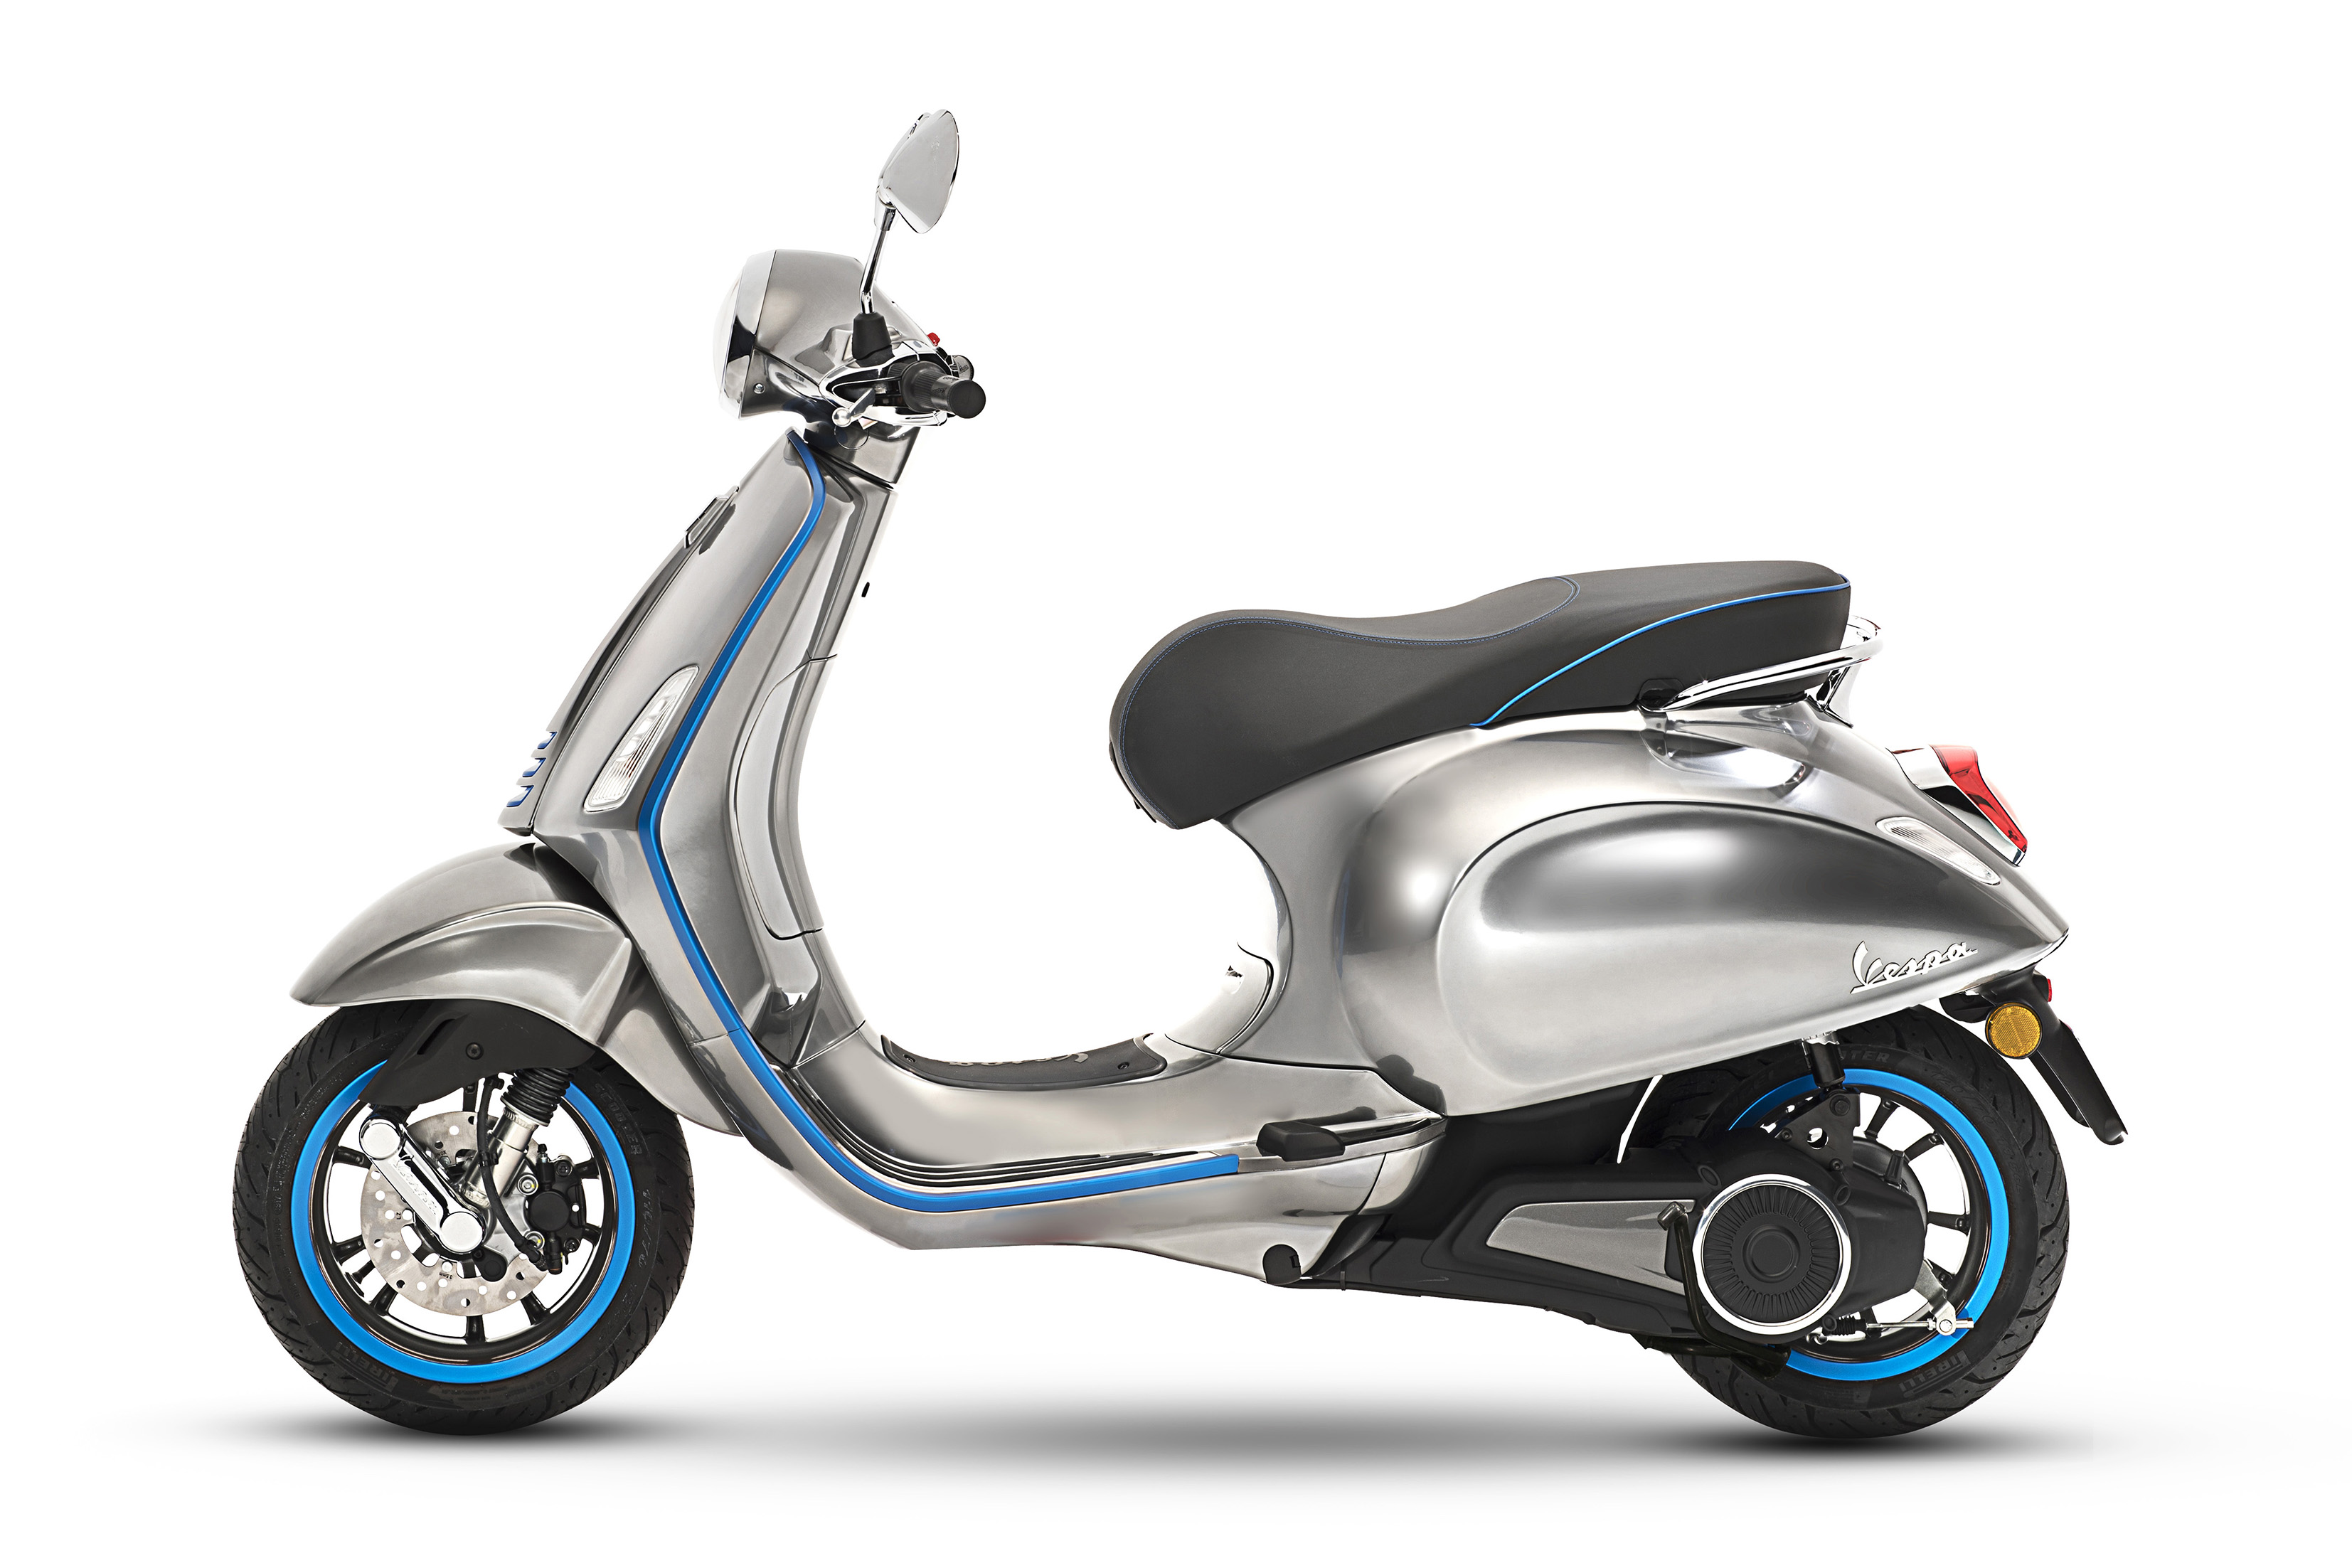 Leading manufacturers of motorcycles and scooters 89